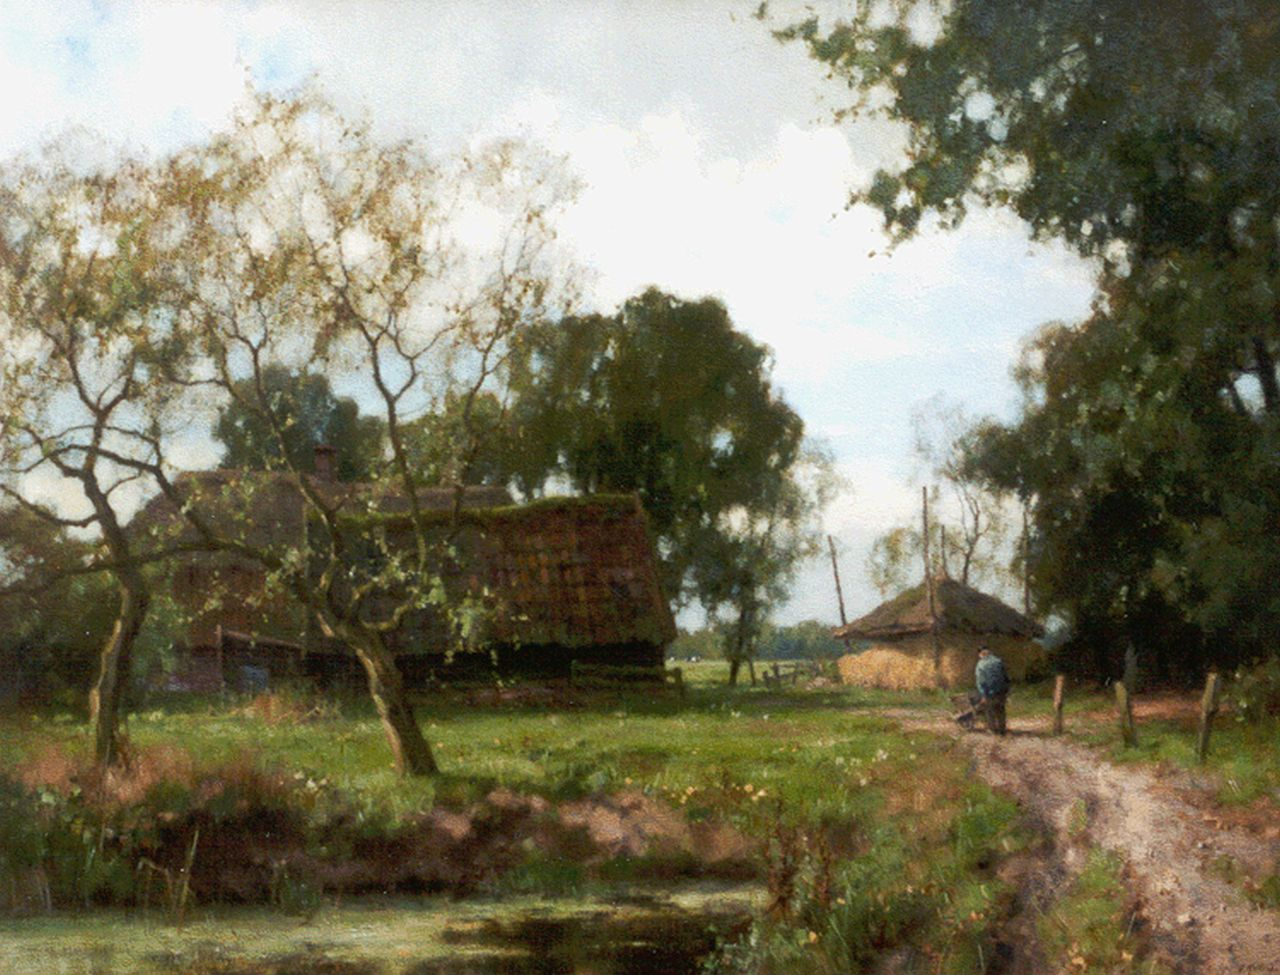 Holtrup J.  | Jan Holtrup, A farm in a wooded landscape, oil on canvas 70.2 x 90.2 cm, signed l.r.